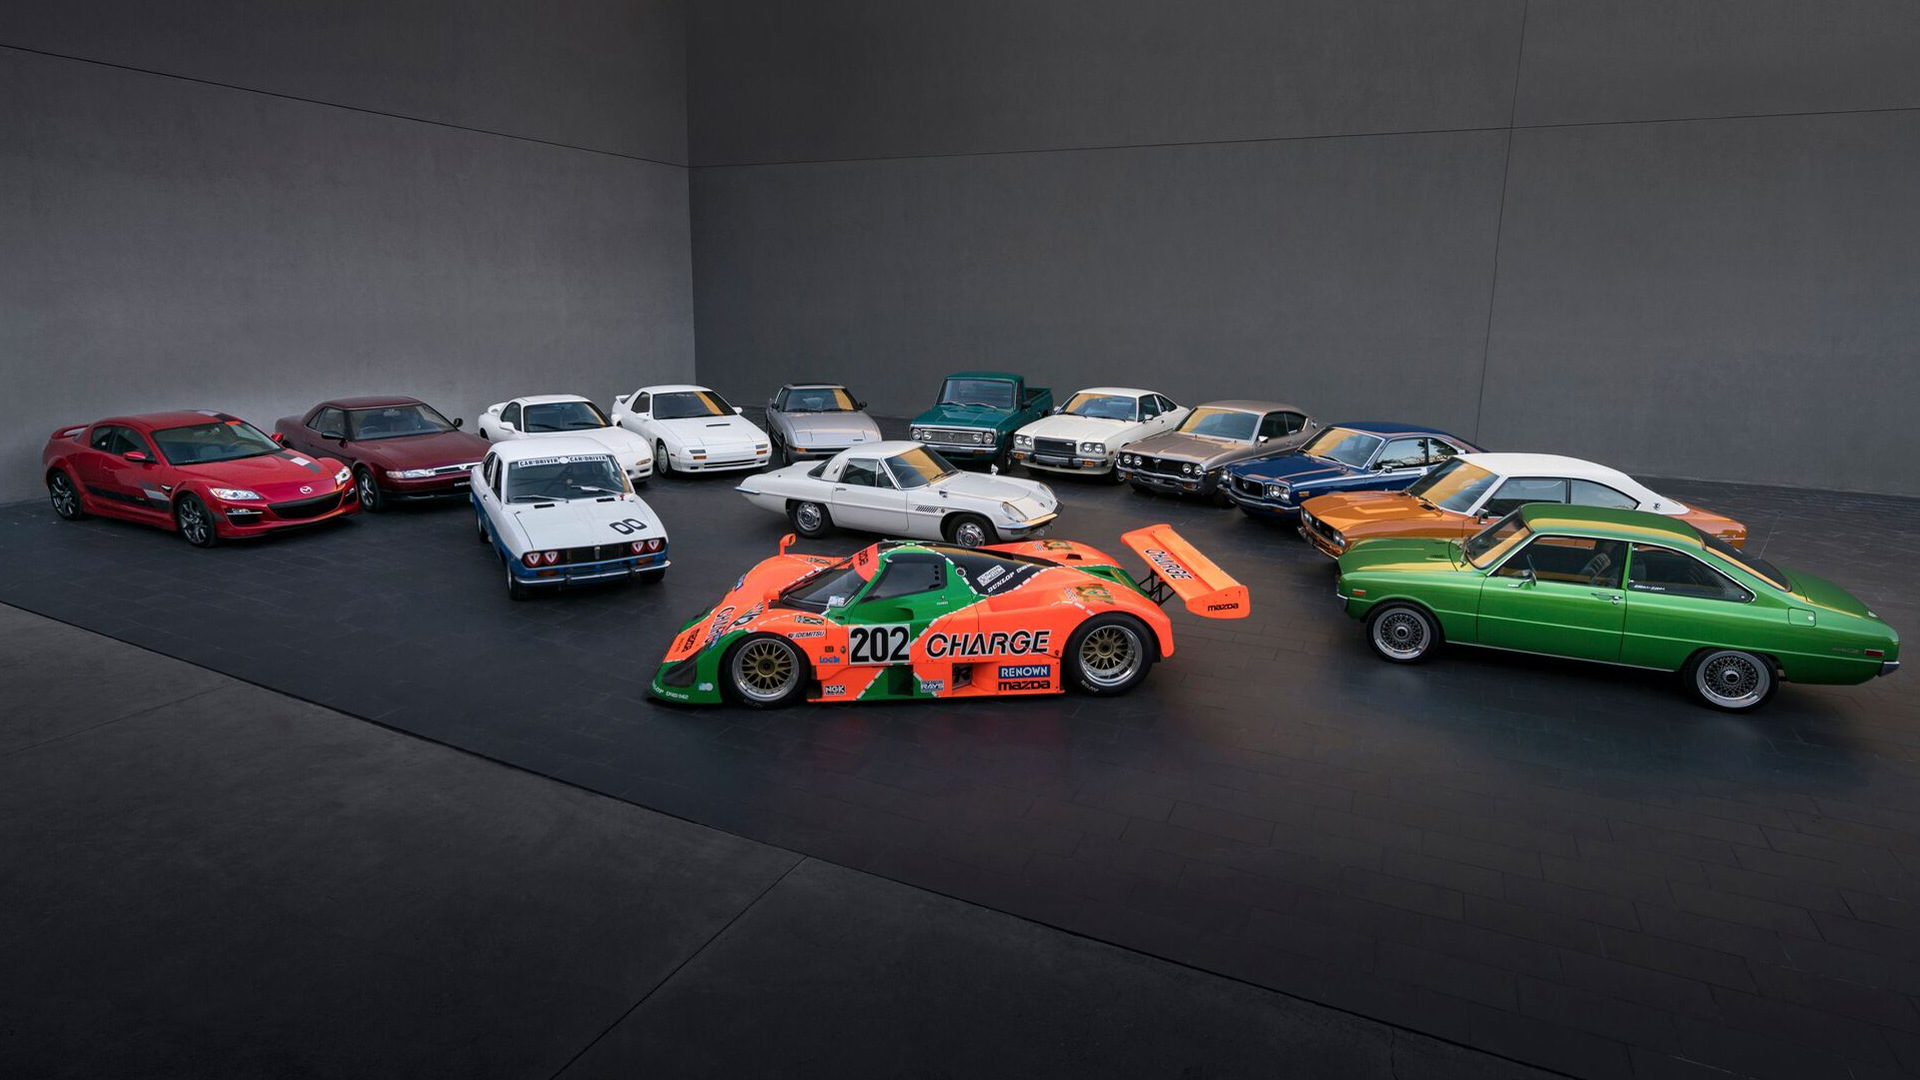 50 years of Mazda rotary cars